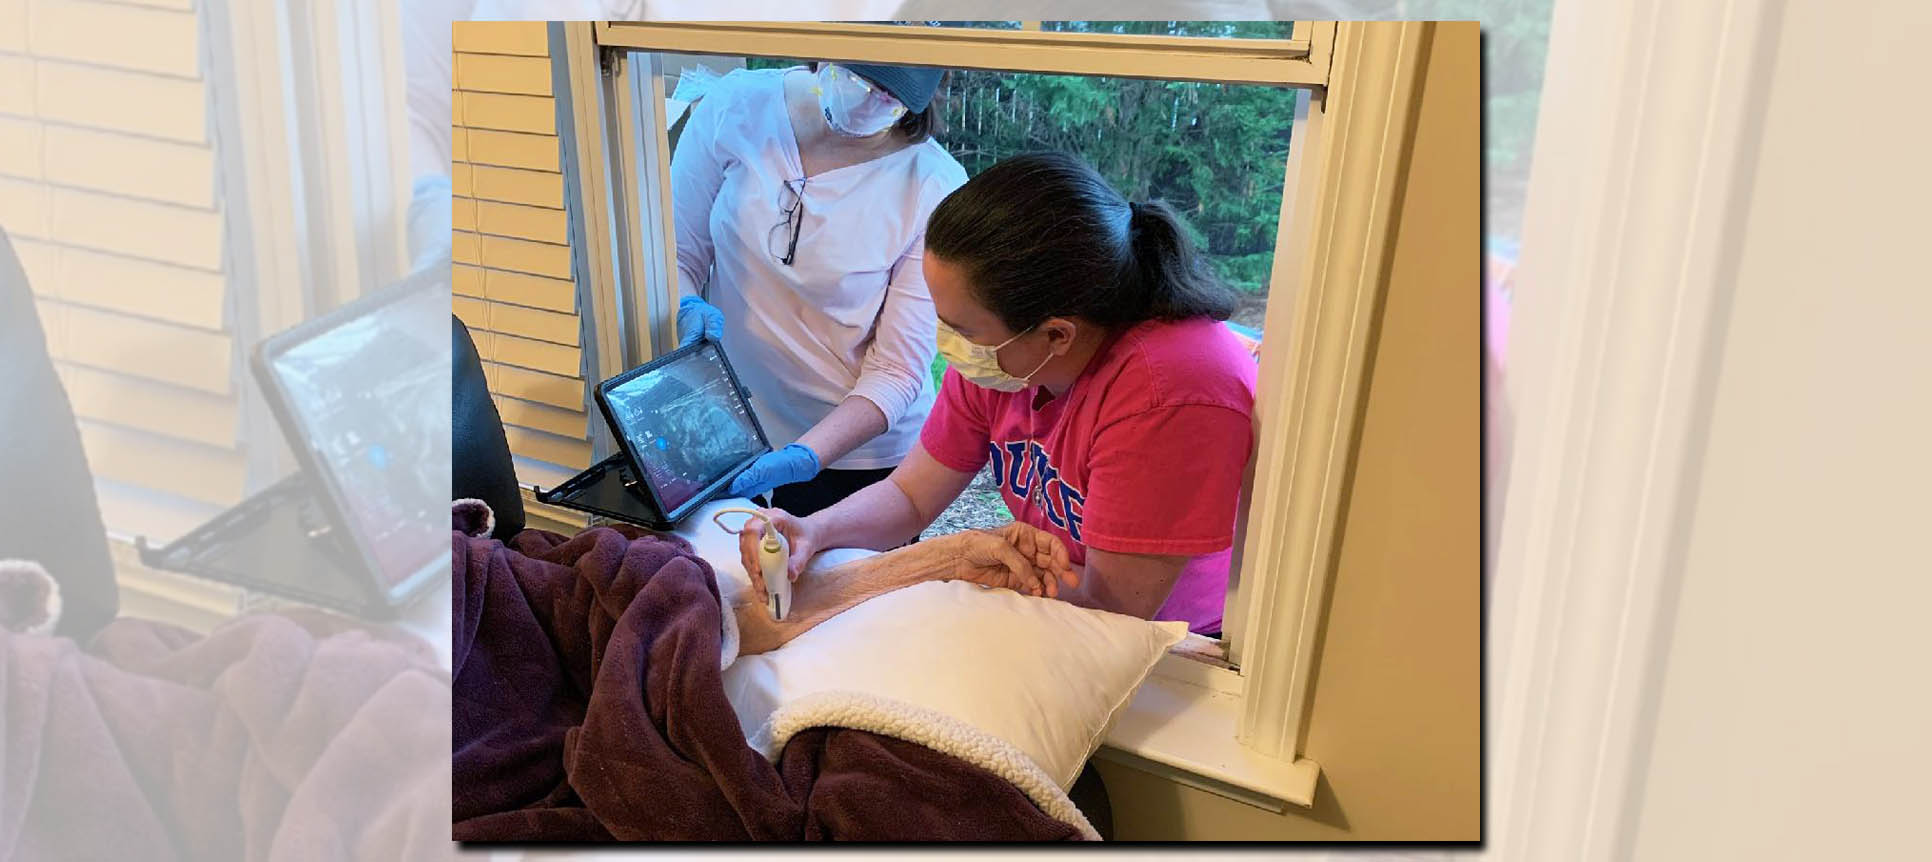 Duke HomeCare & Hospice home infusion nurses gave treatment through a window for a patient in need.